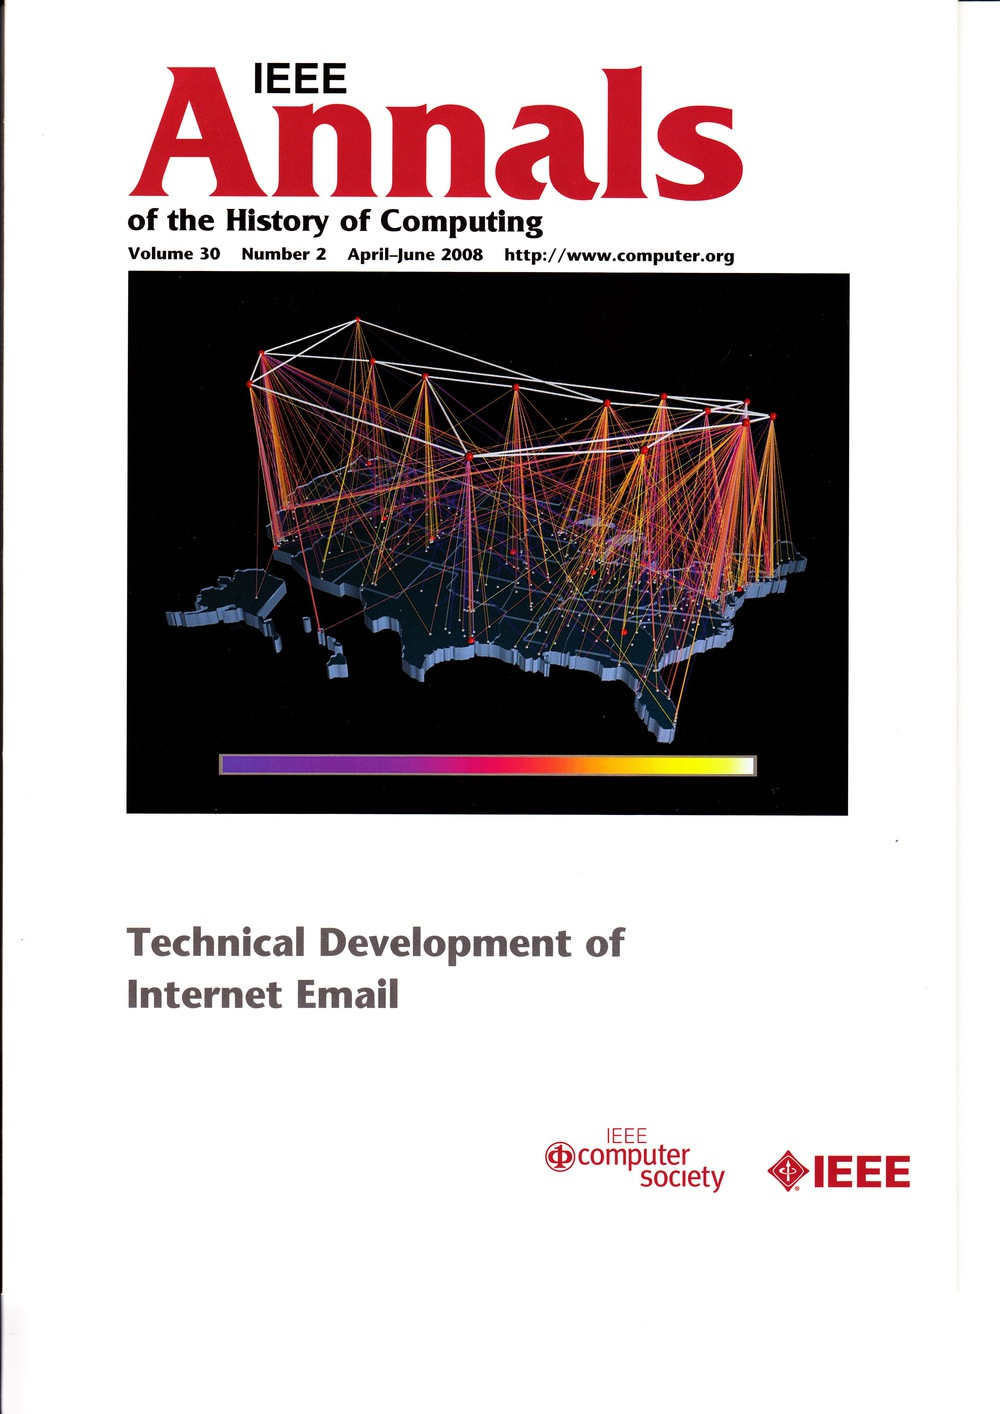 Scan of Document: IEEE Annals of the History of Computing - April-June 2008